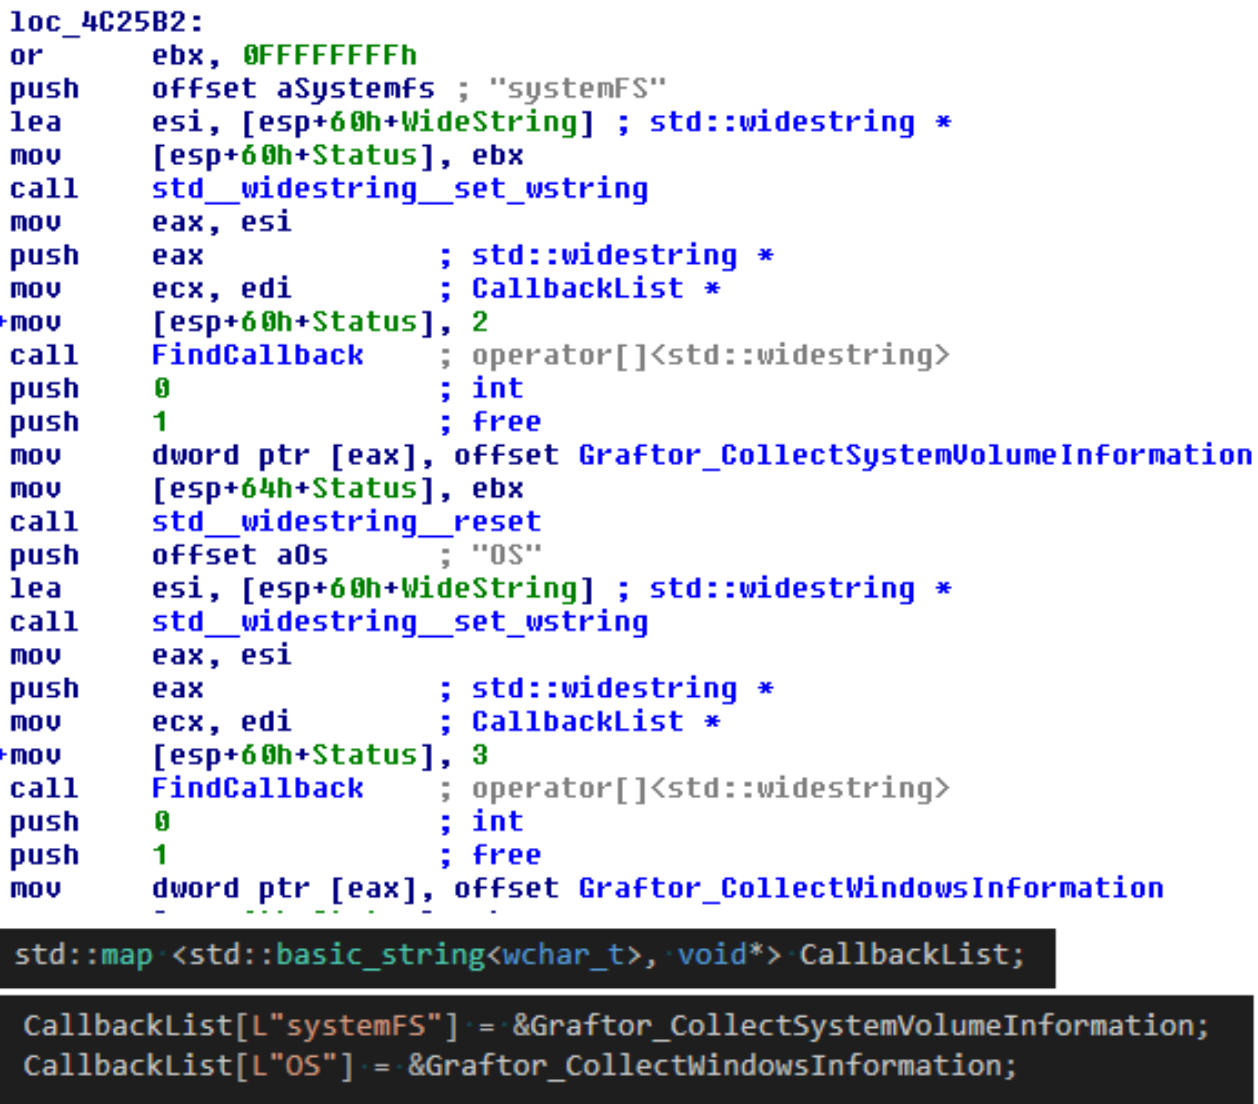 WHMCS 5 2 7 SQL Injection